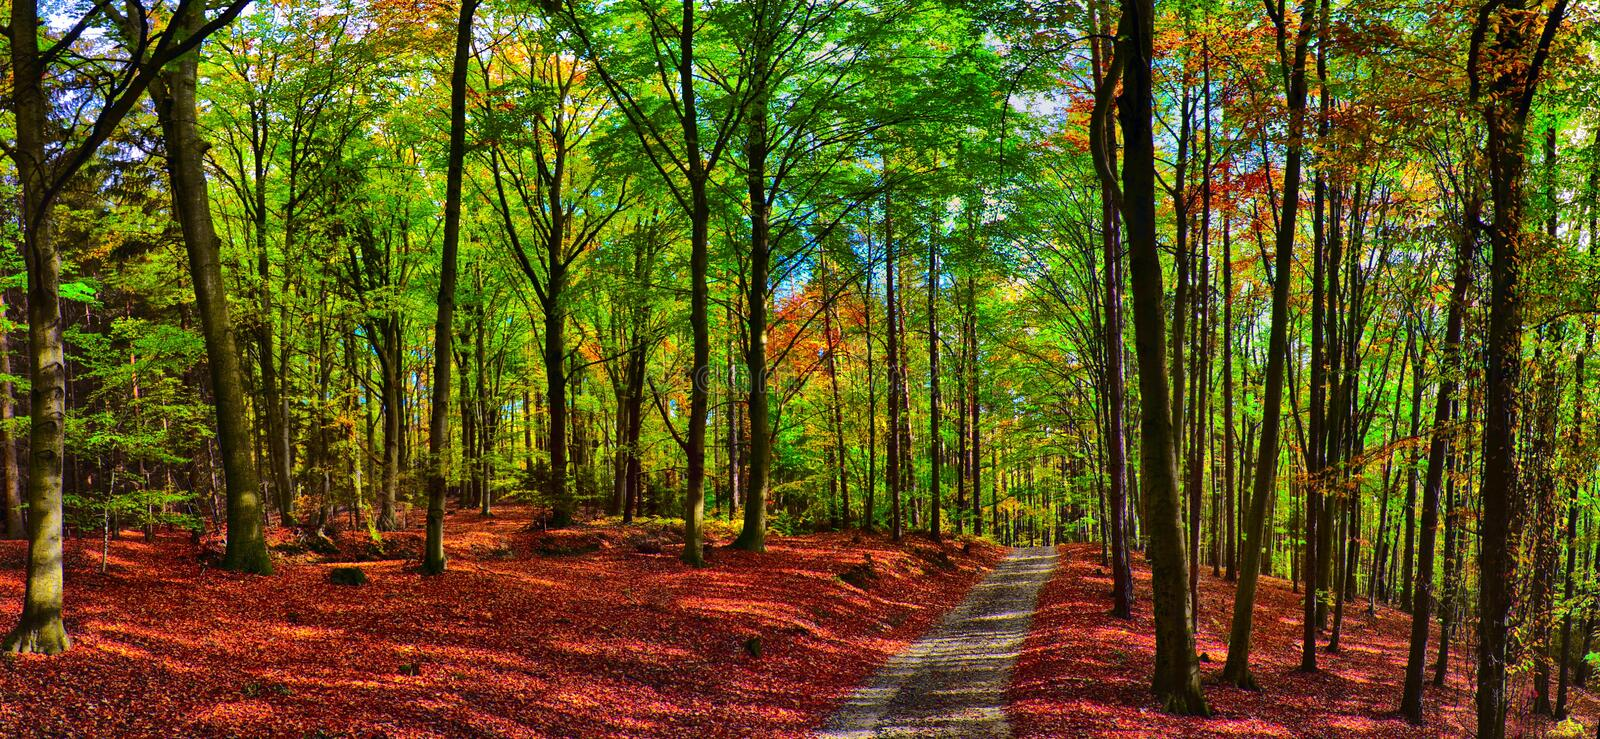 Beech trees forest/woodland with gravel road at autumn afternoon daylight. Broad leaf trees,forest floor,foliage, green leafs.HDR panoramic photo. Red, yellow royalty free stock photos